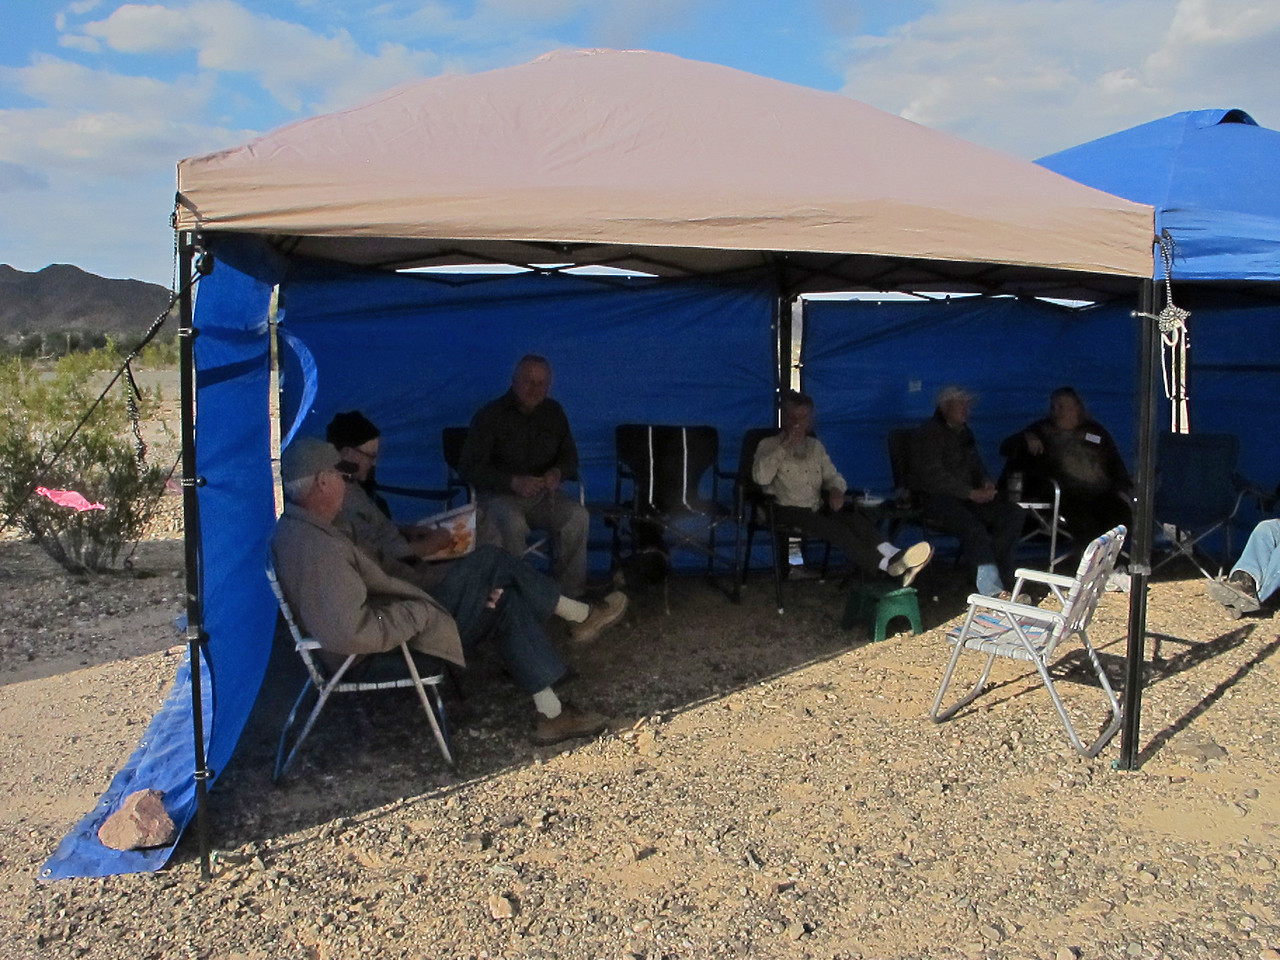 Some days were fairly windy, so the tent became the place to hang out and visit.